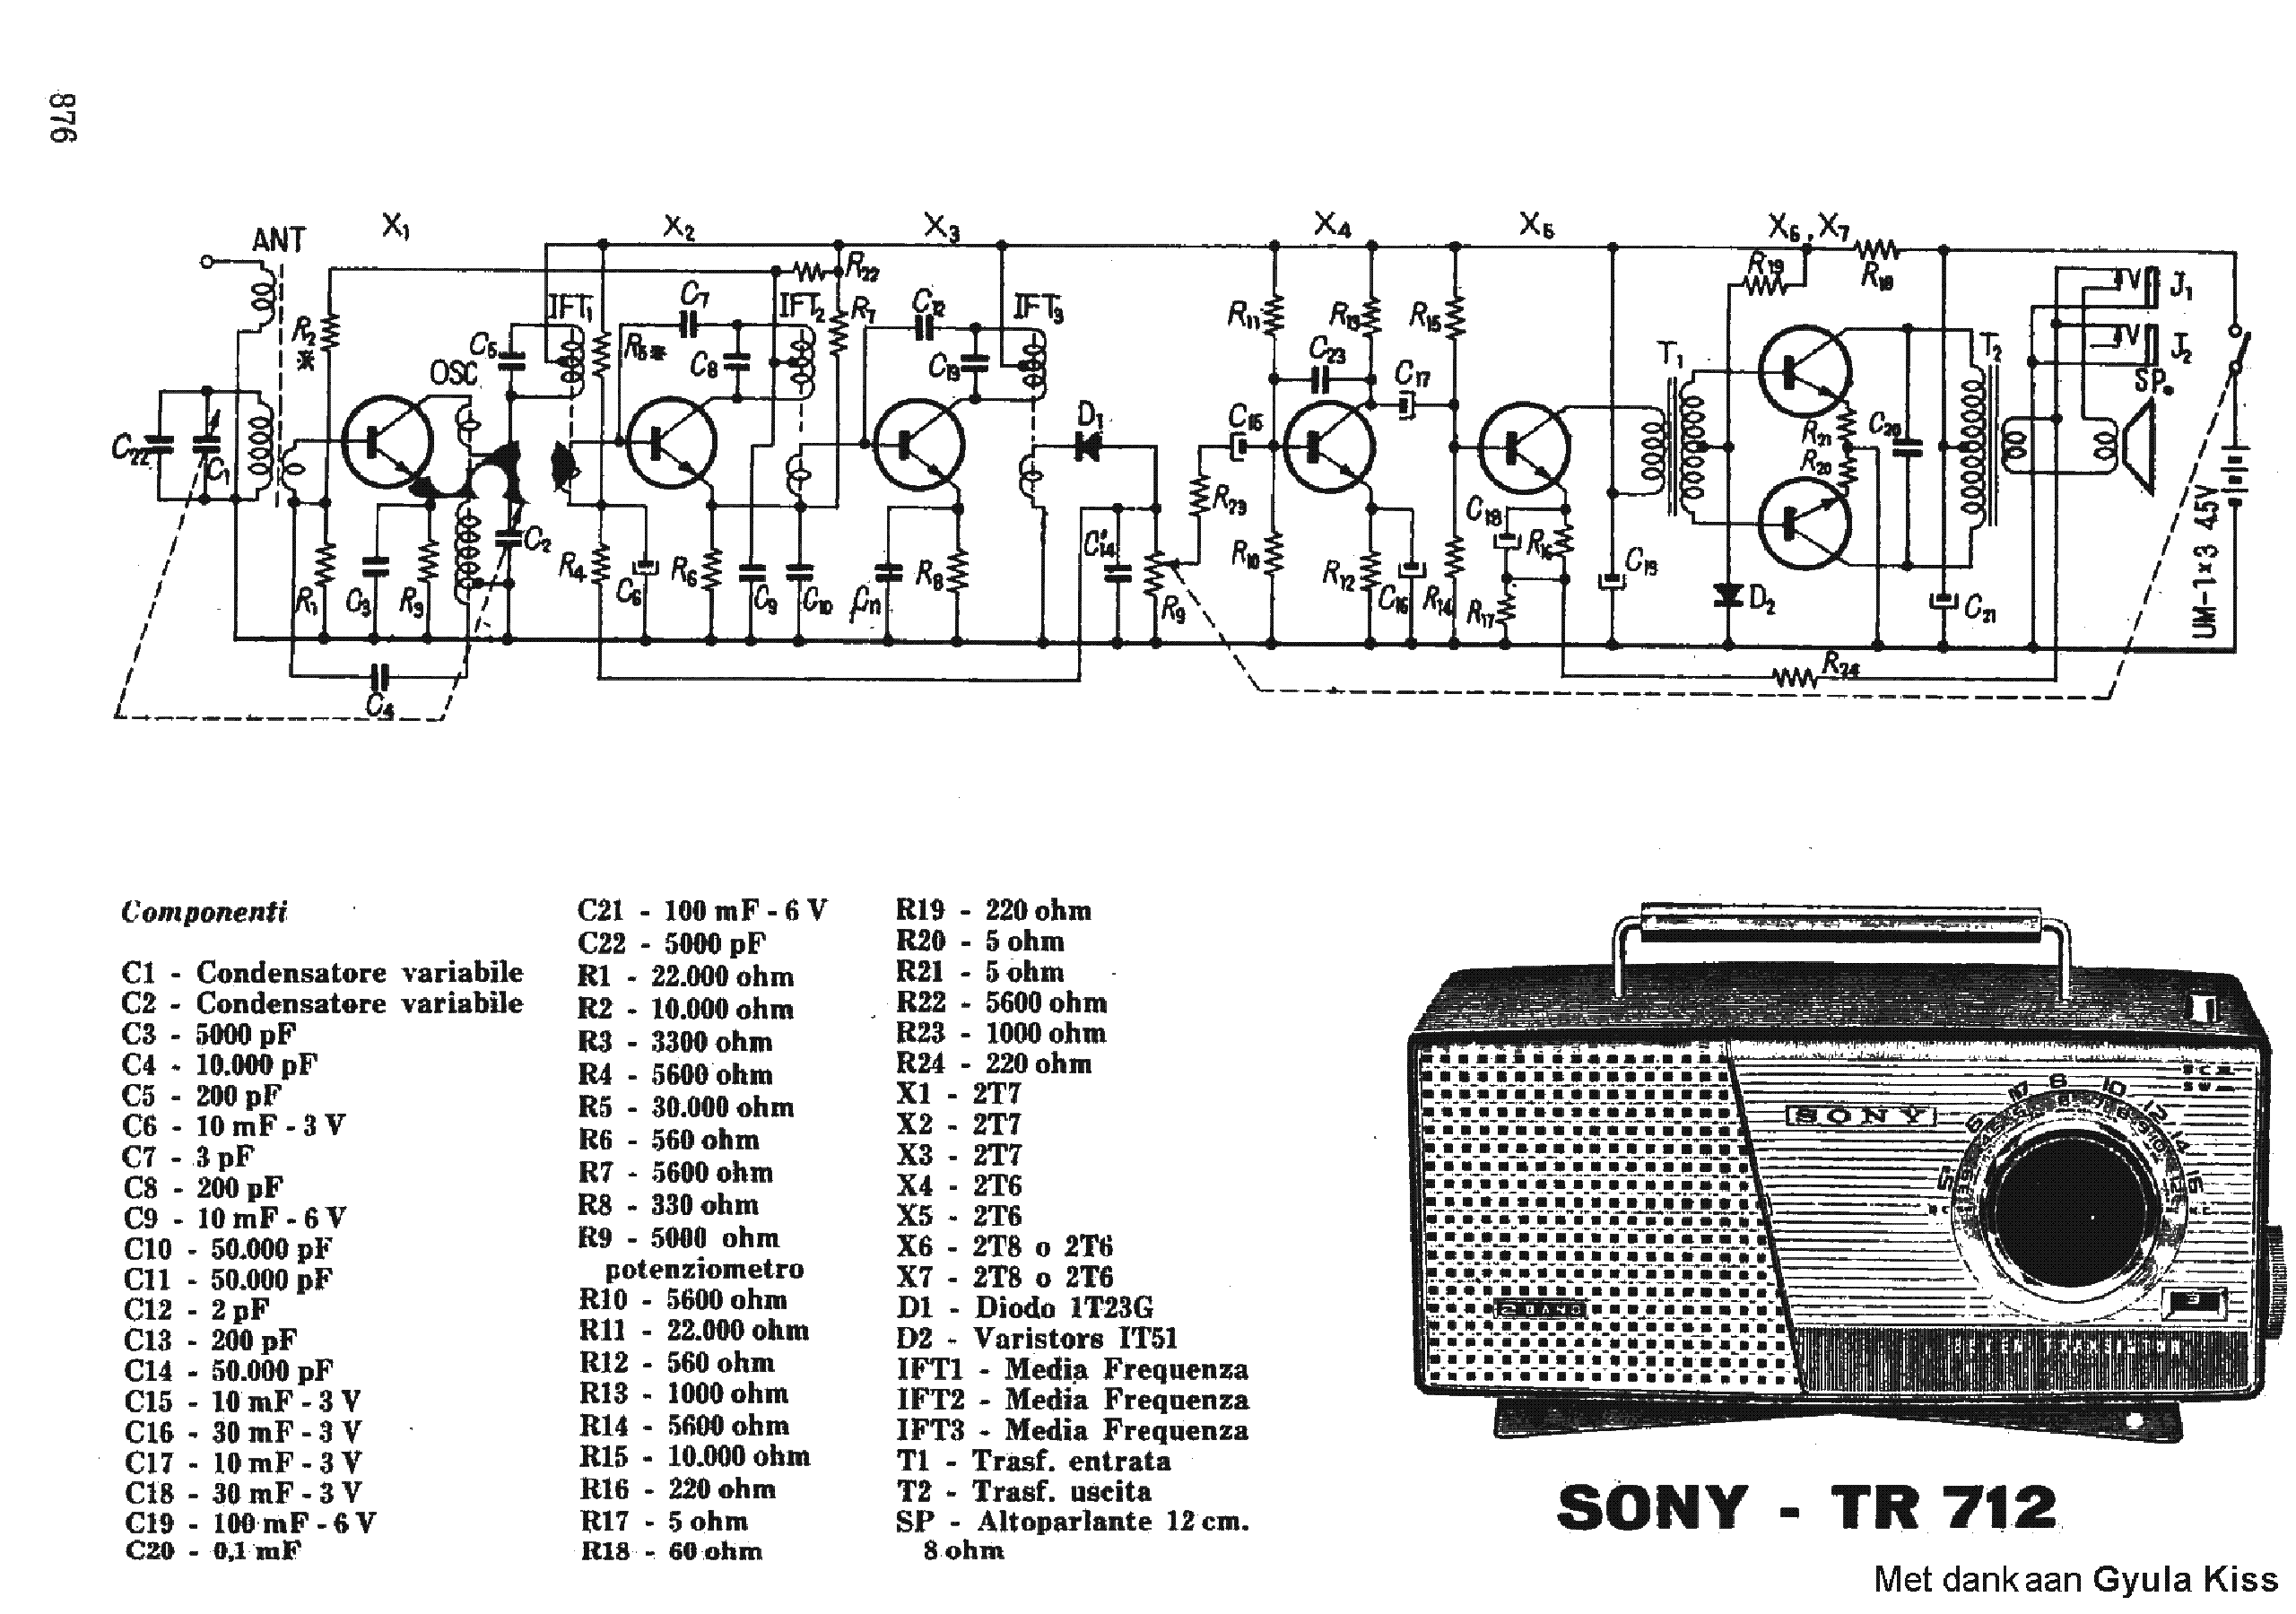 sony tr712 transistor portable radio sch service manual download rh elektrotanya com sony radio manual icf-sw7600gr sony radio manual icf-sw7600gr